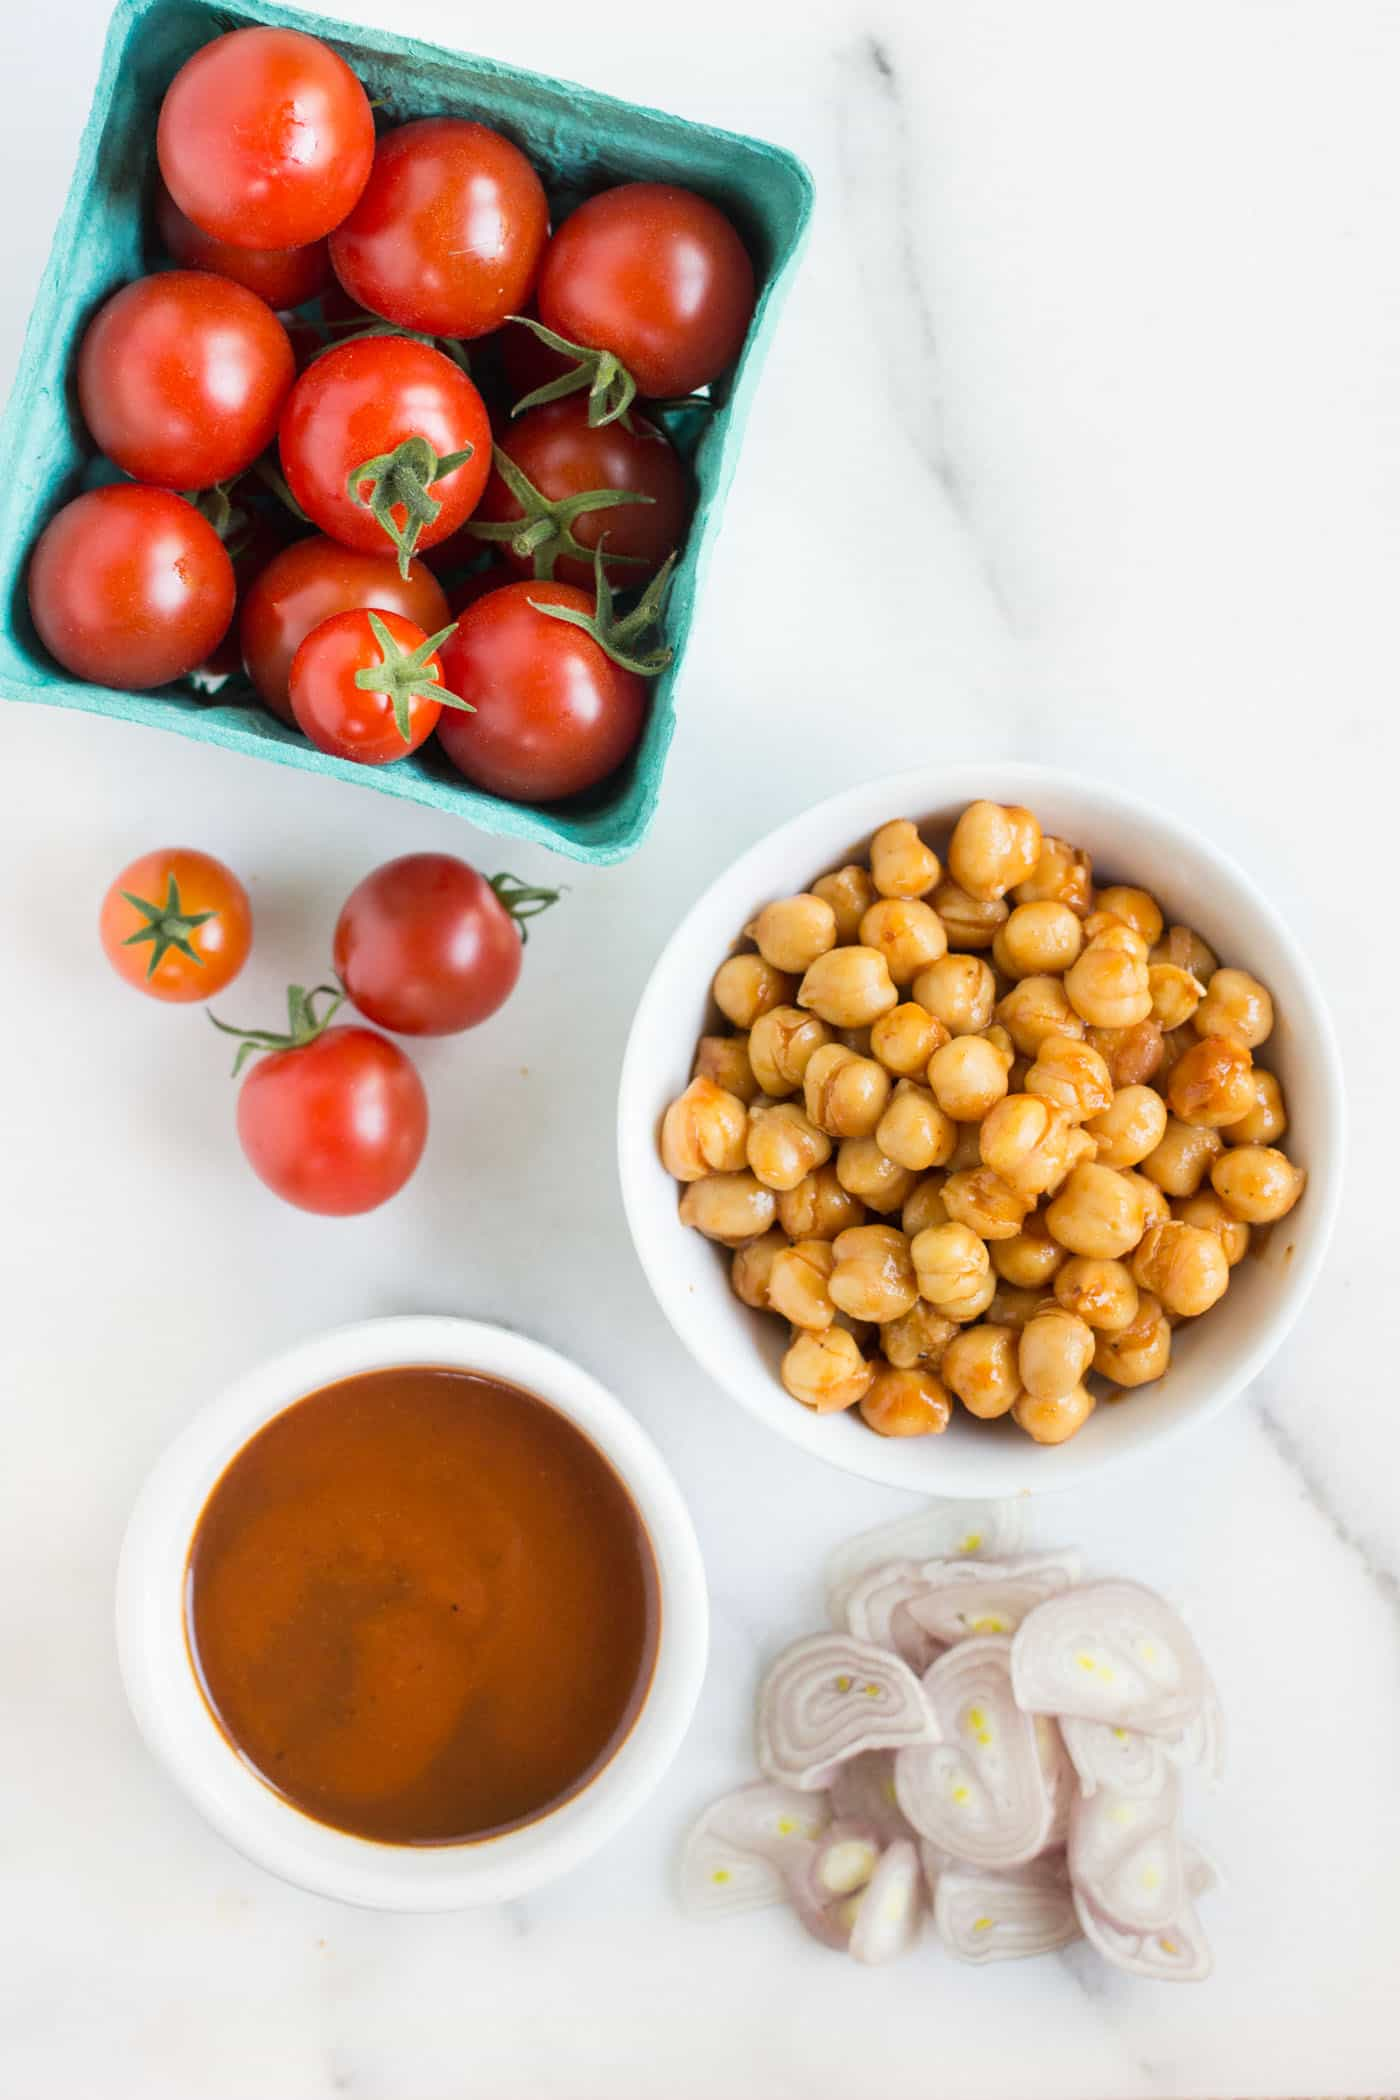 The ultimate BBQ pizza toppings: chickpeas, shallots and cherry tomatoes!